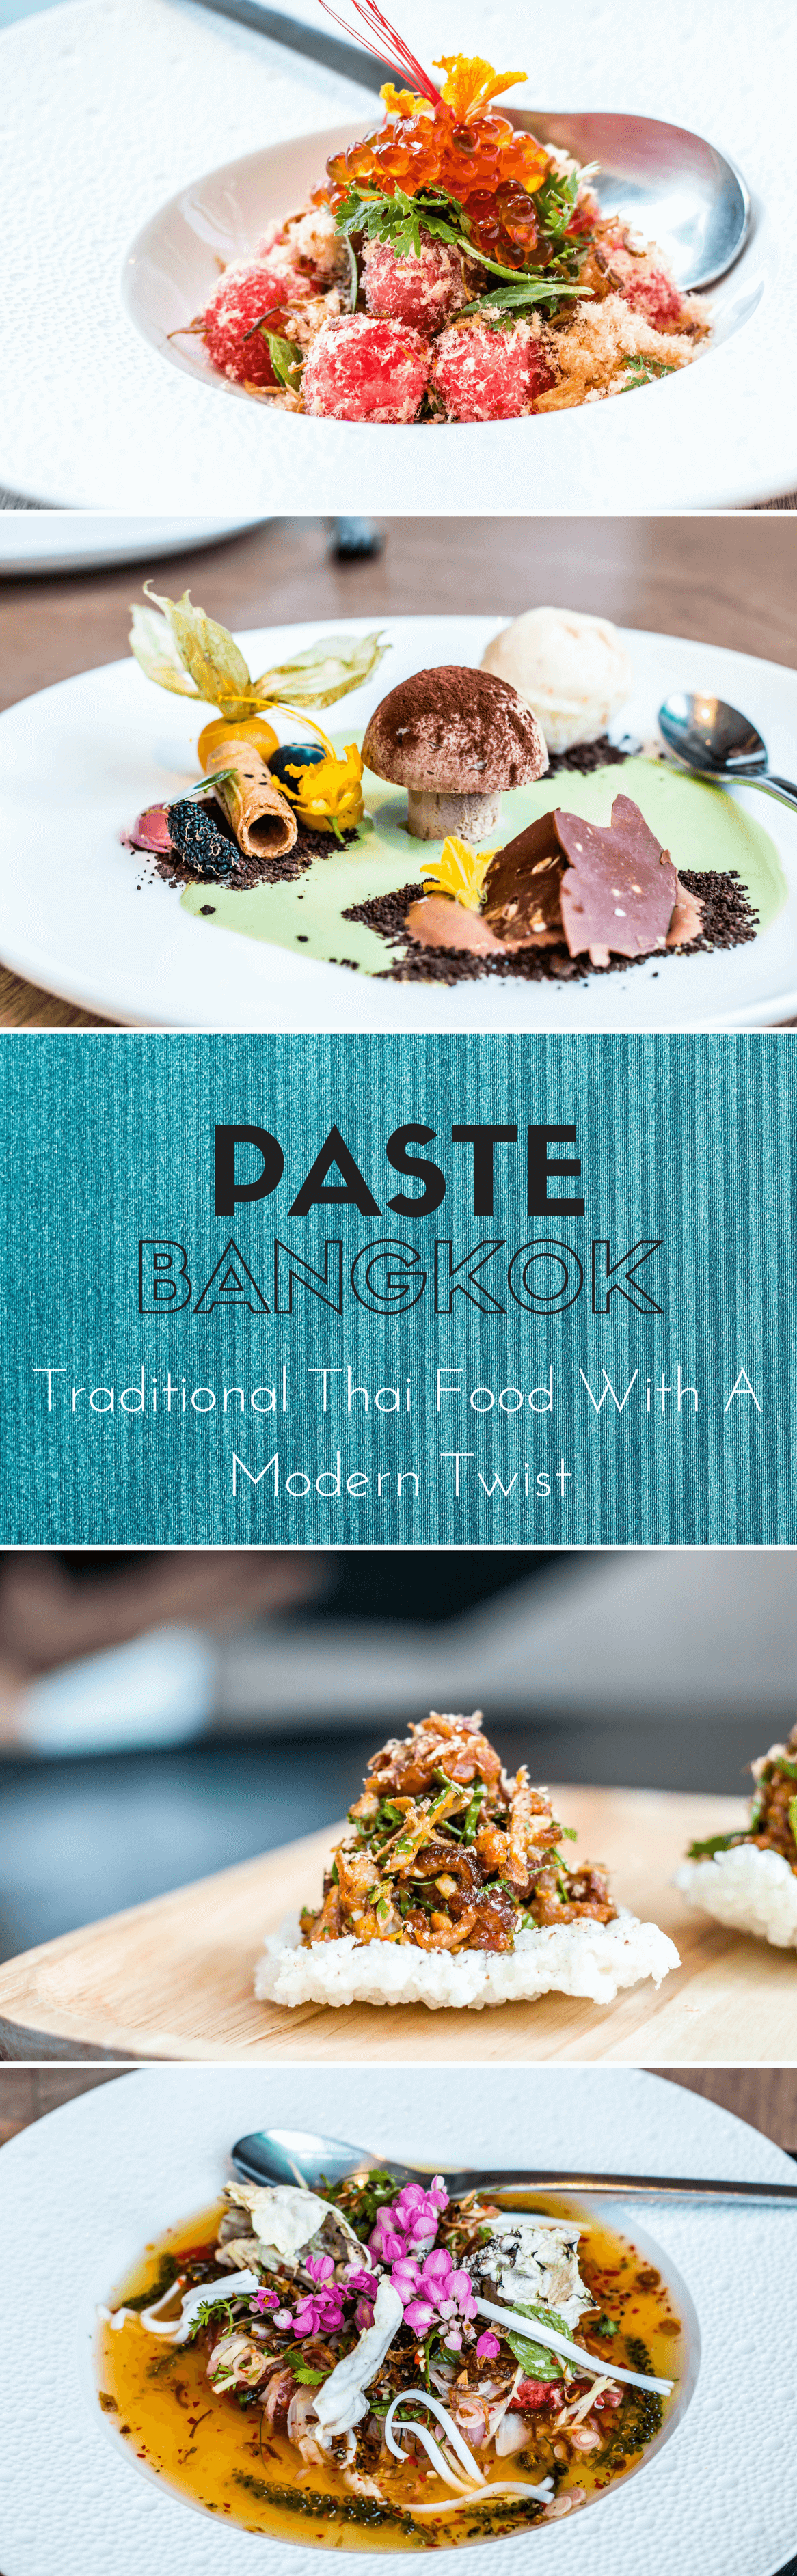 Paste Bangkok - An elite restaurant of modern Thai food - a must eat when in Bangkok! Click through to read the full review @ https://www.hedonistit.com